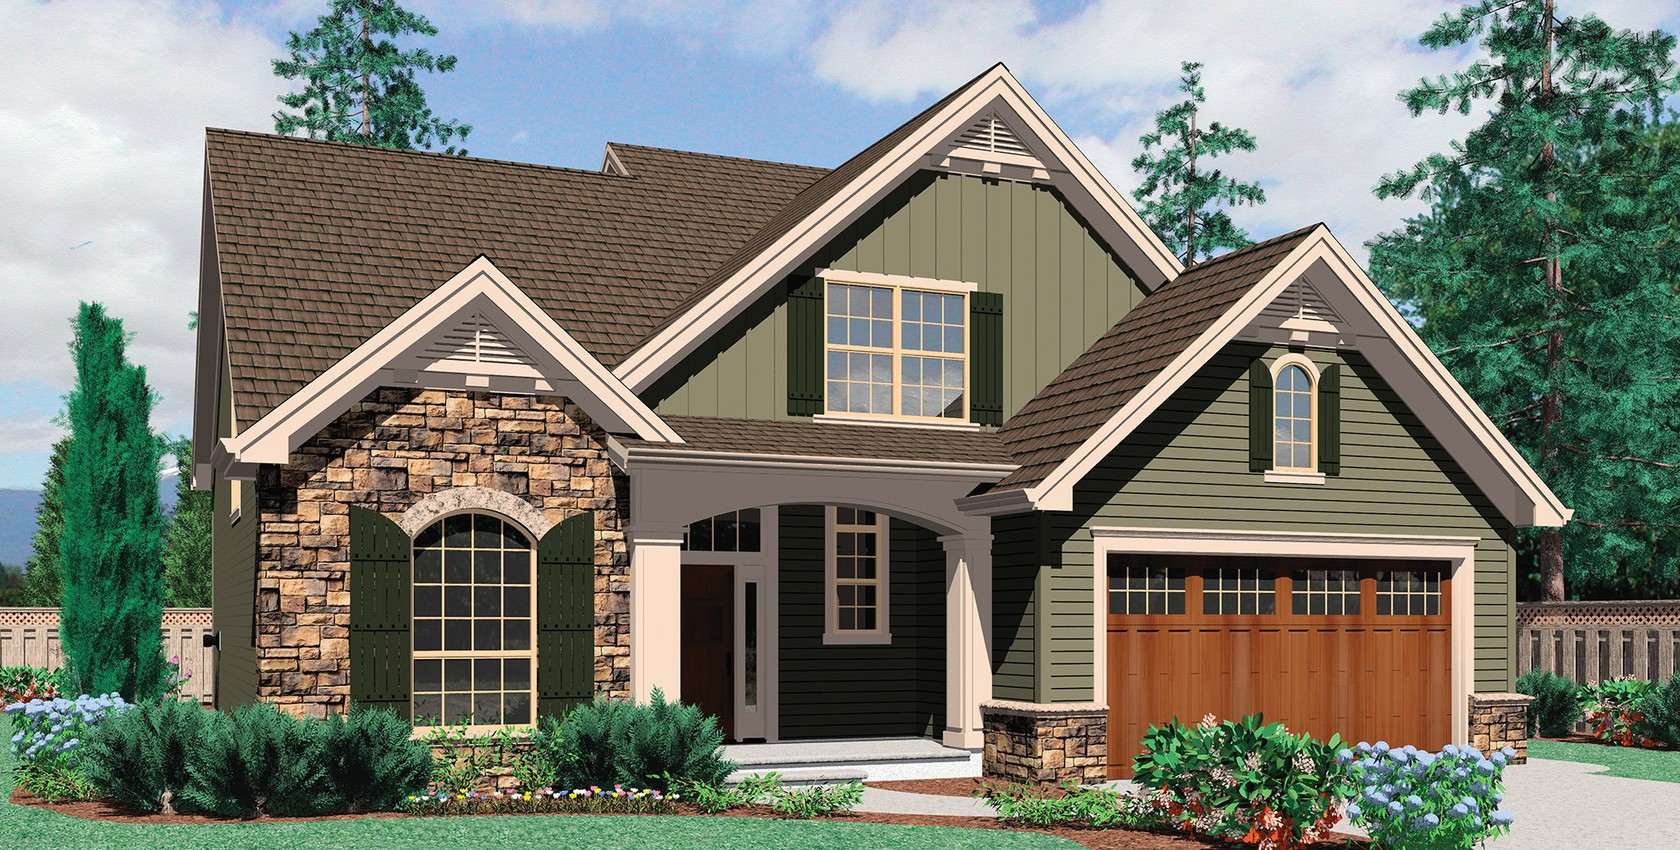 Mascord house plan 22140 the landon for The landon house